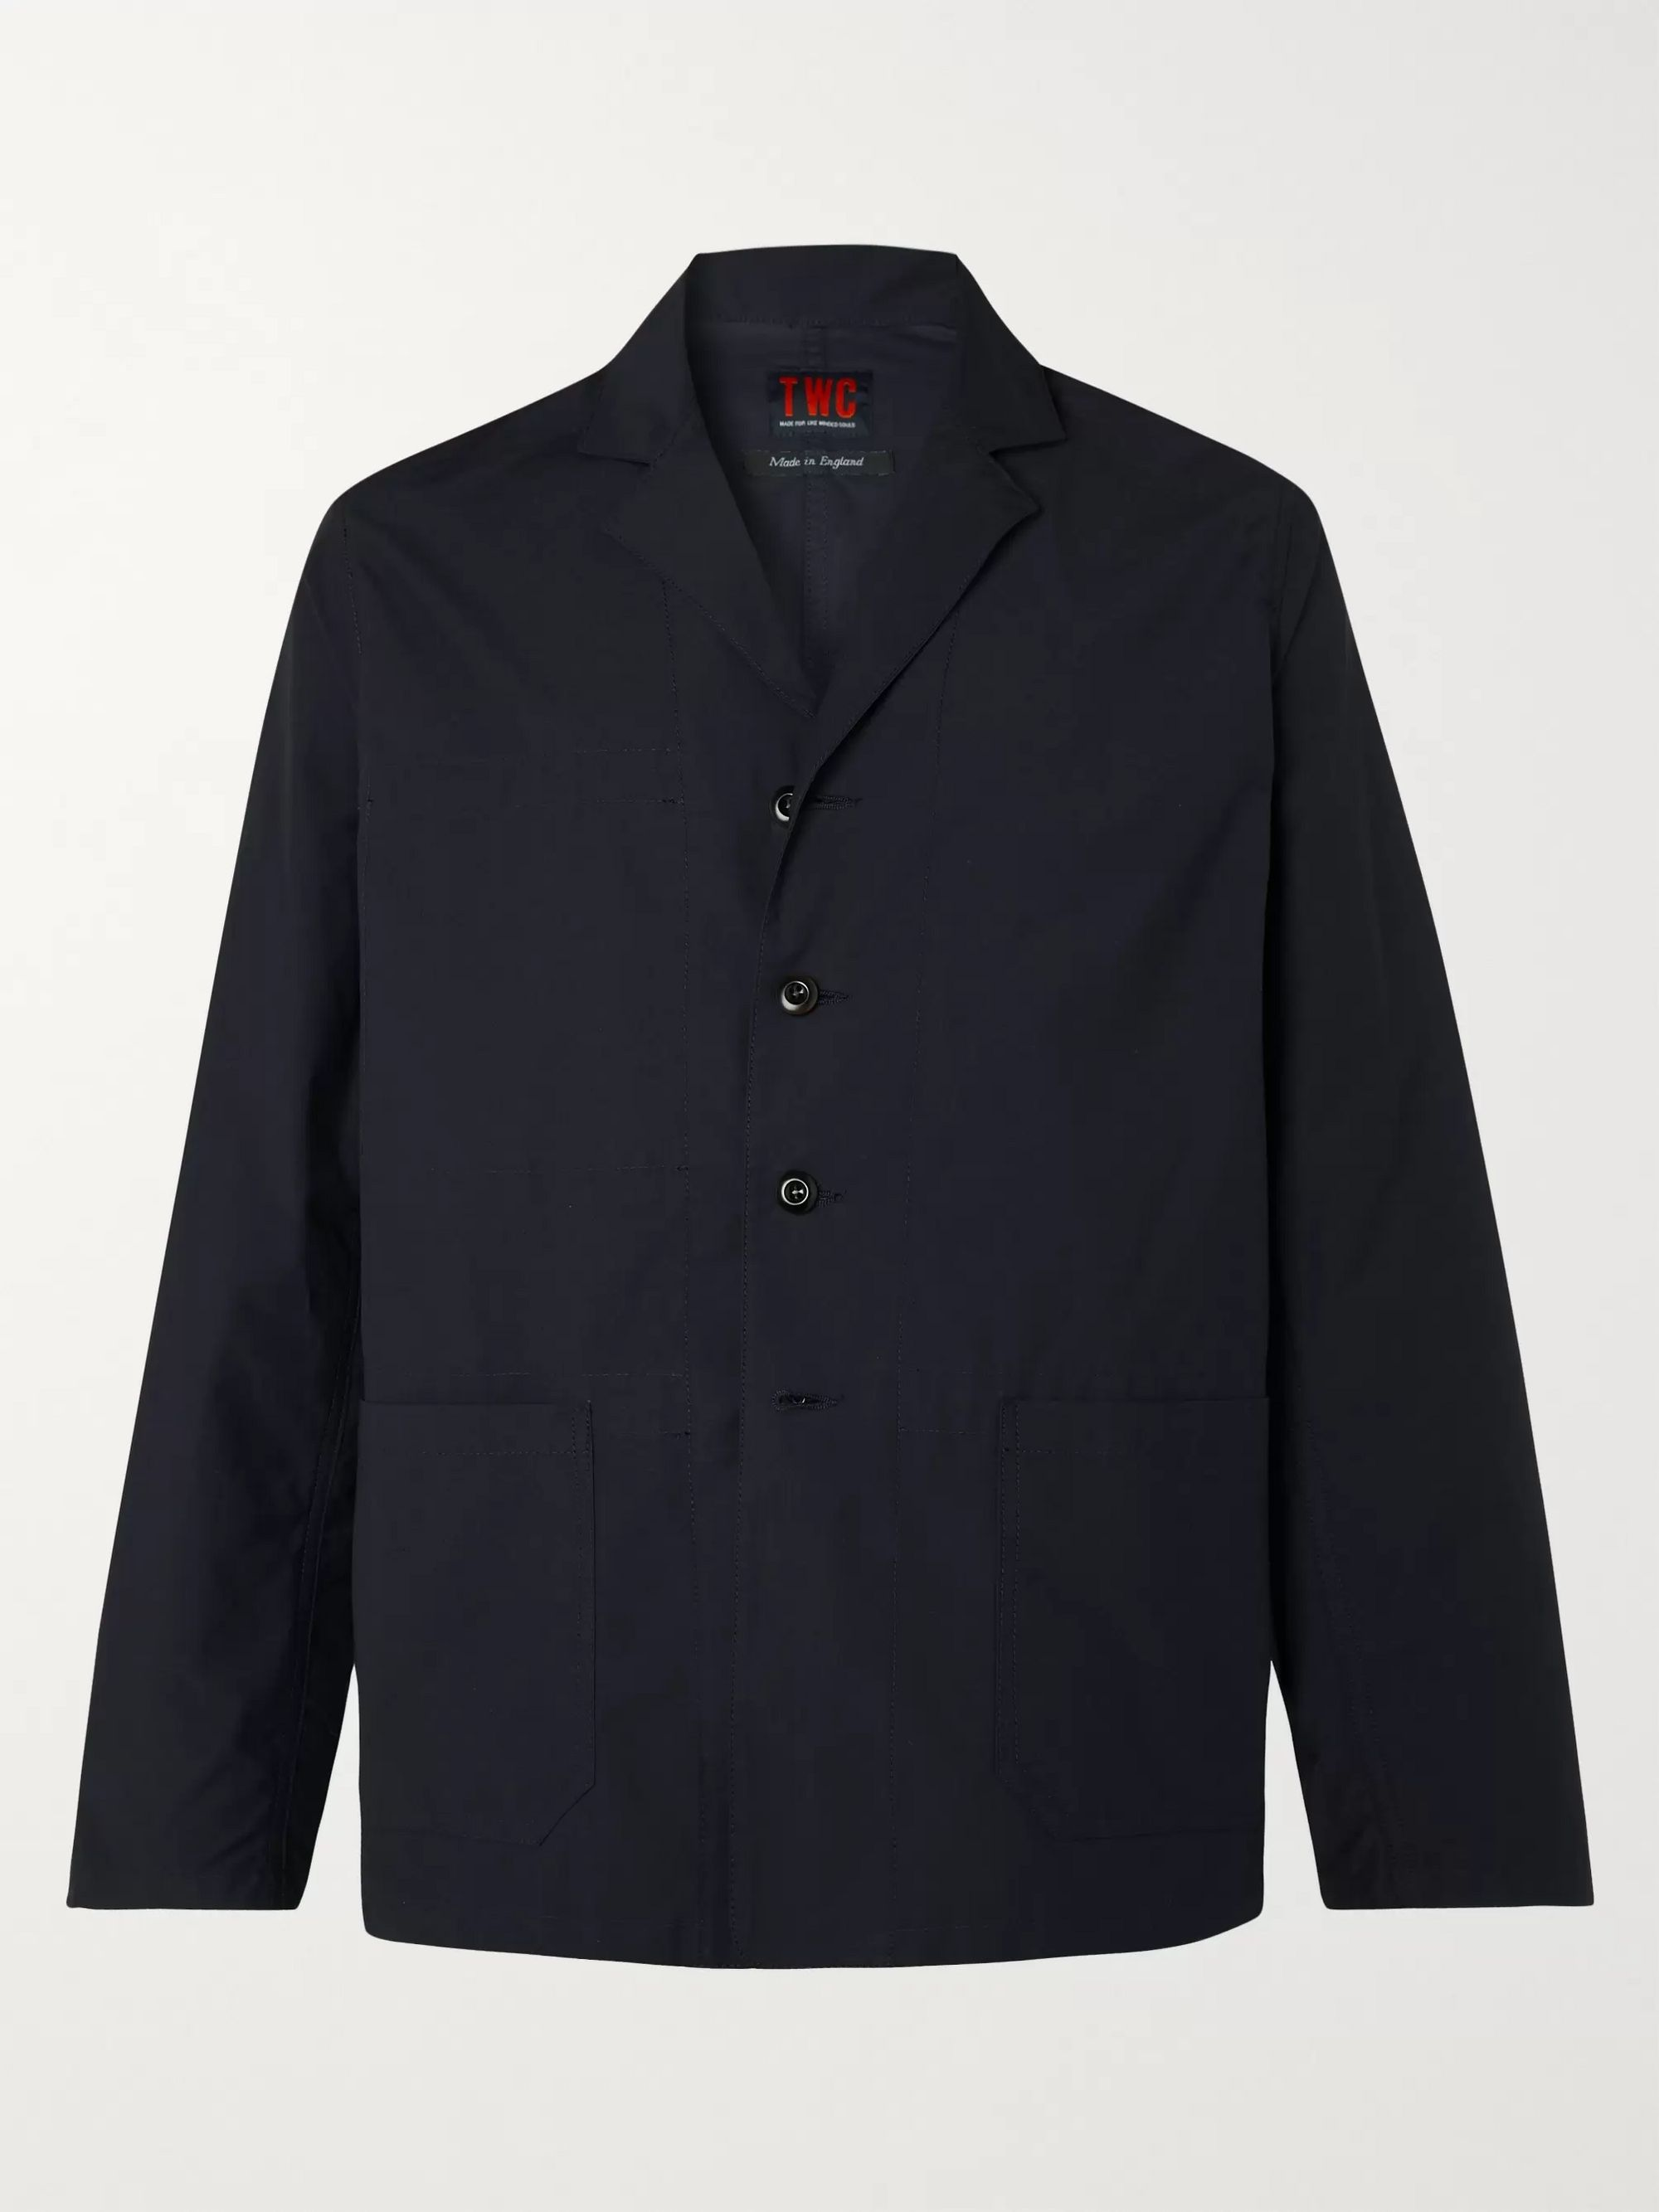 The Workers Club Camp-Collar Unstructured Twill Blazer